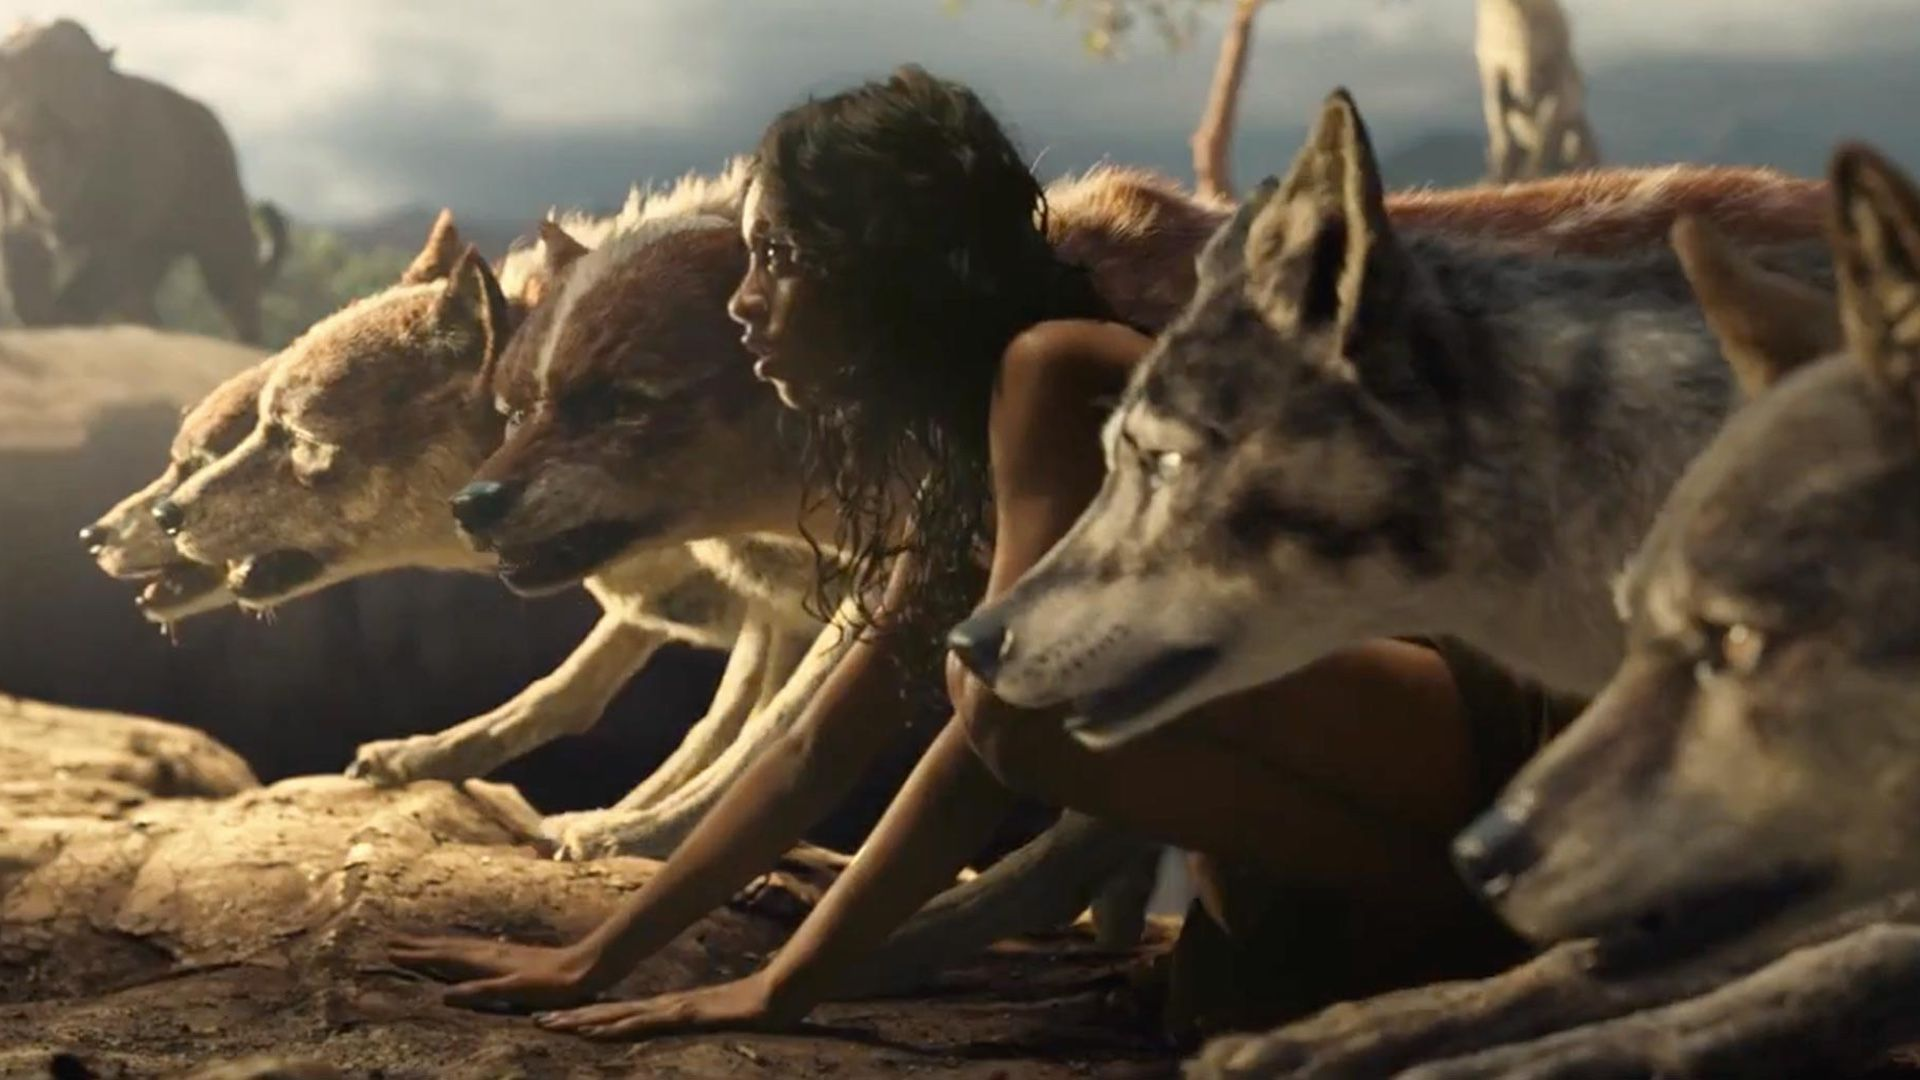 andy-serkis-jungle-book-film-mowgli-is-now-being-released-on-netflix-social